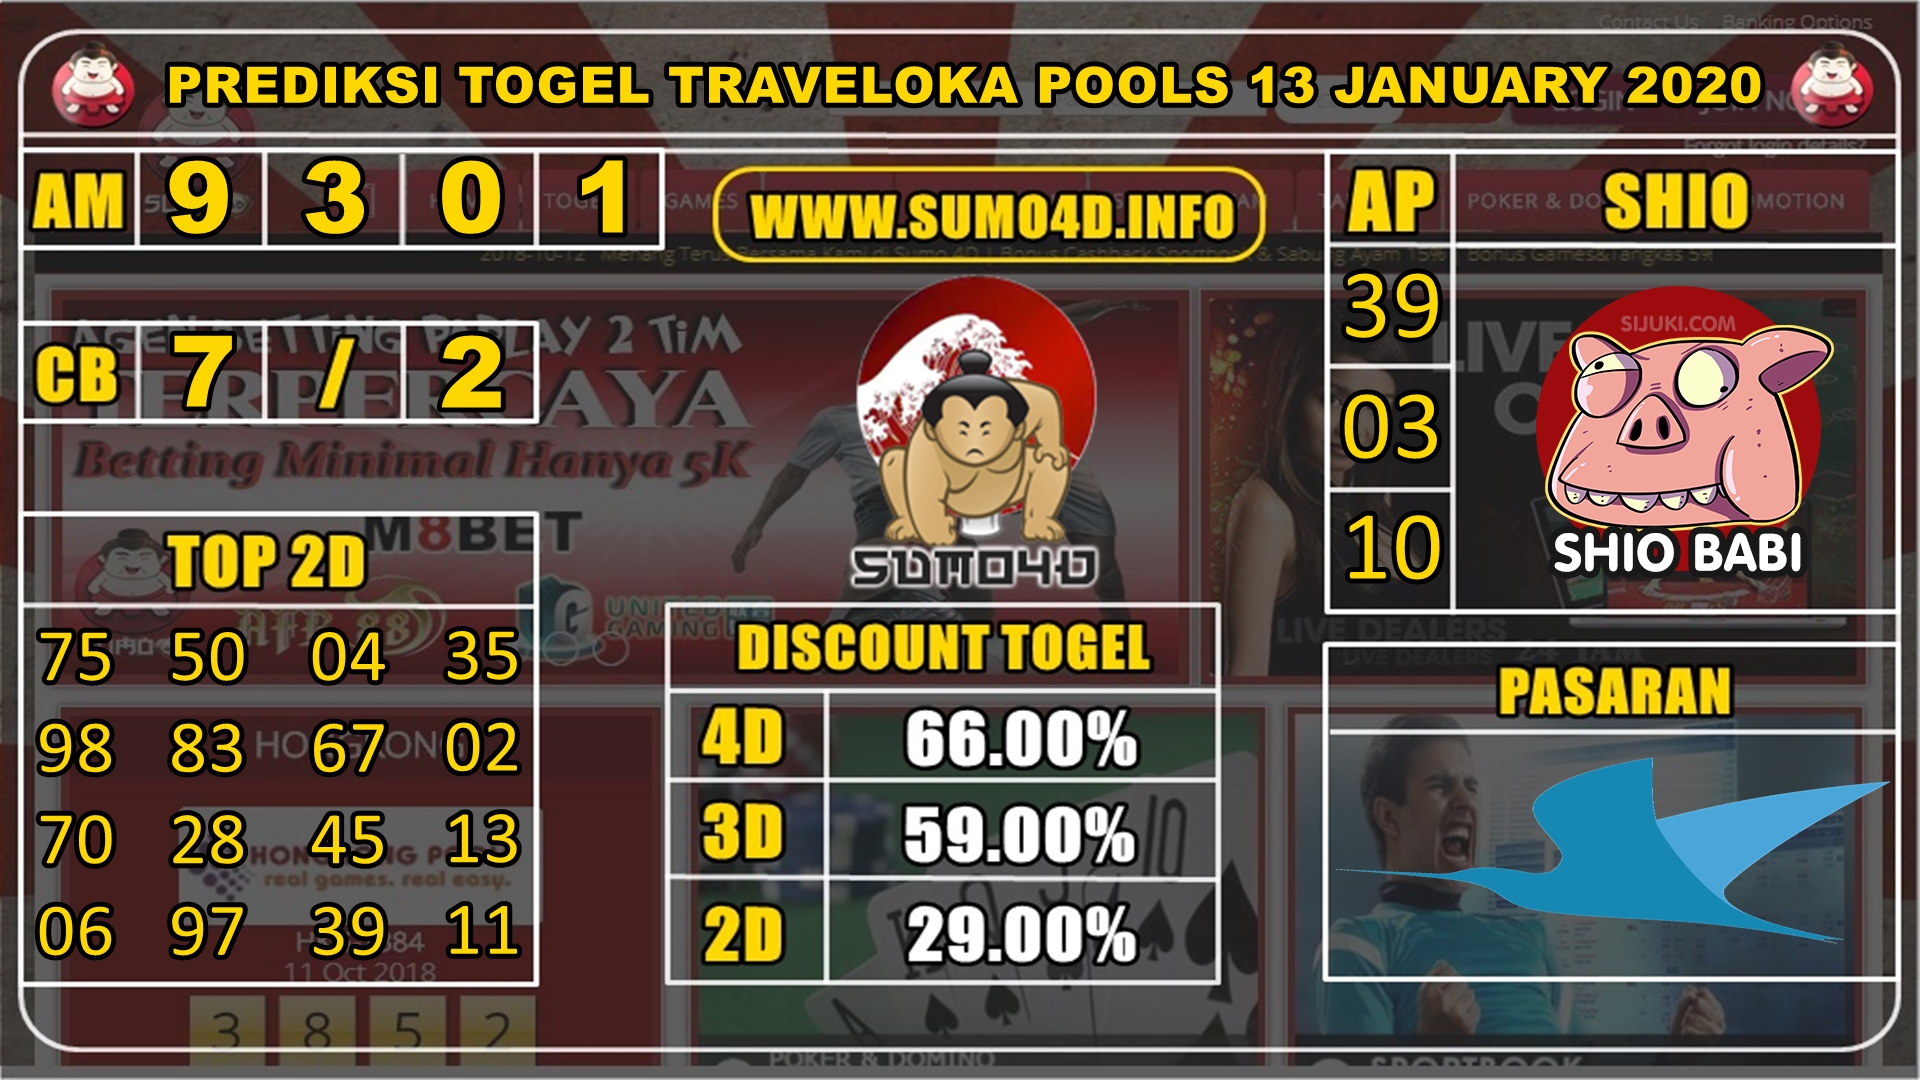 PREDIKSI TOGEL TRAVELOKA POOLS 13 JANUARY 2020